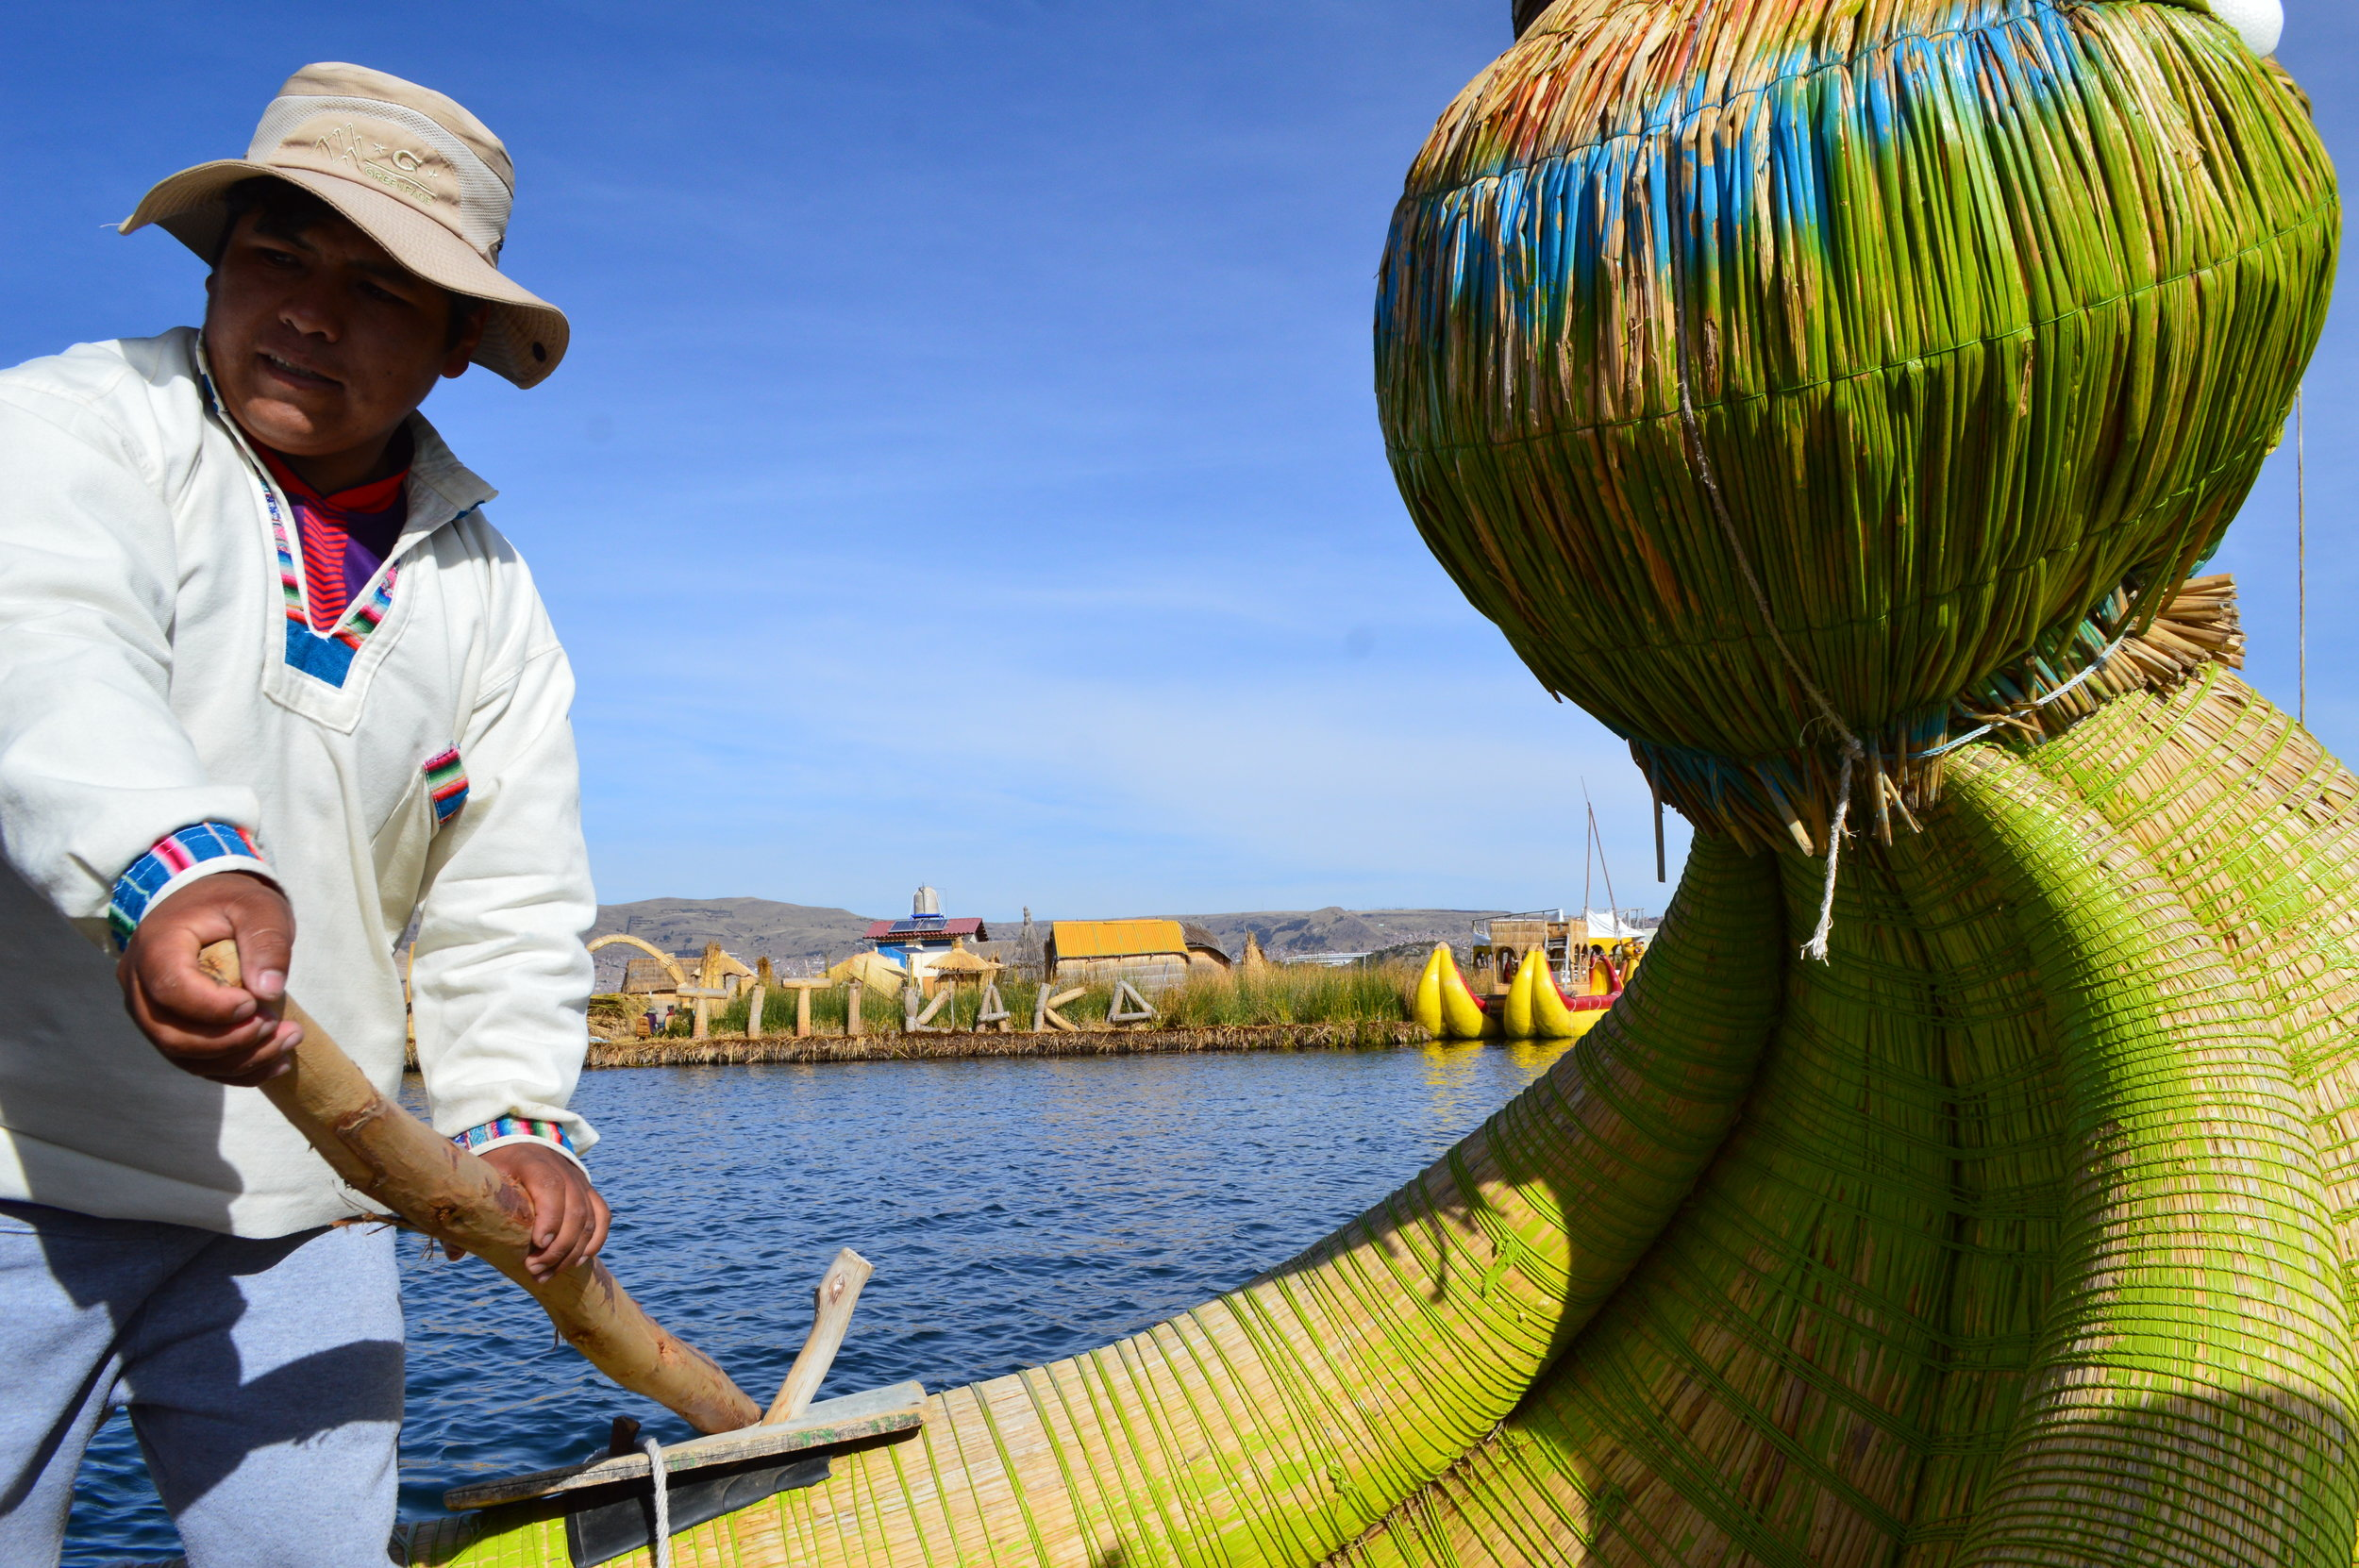 The president of one of the floating islands rowing this traditional boat